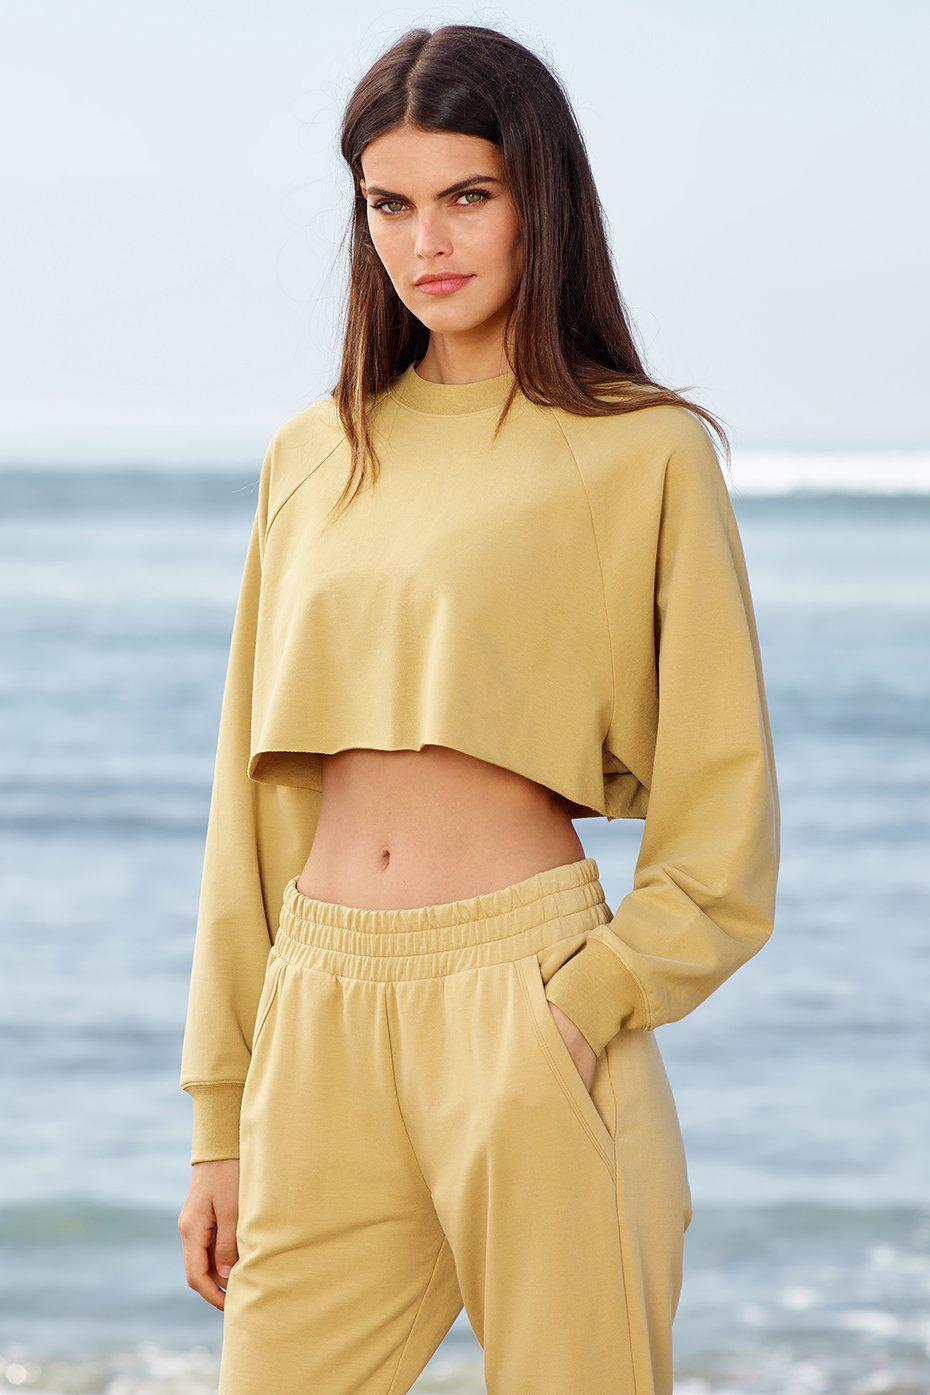 Double Take Pullover - Honey 4